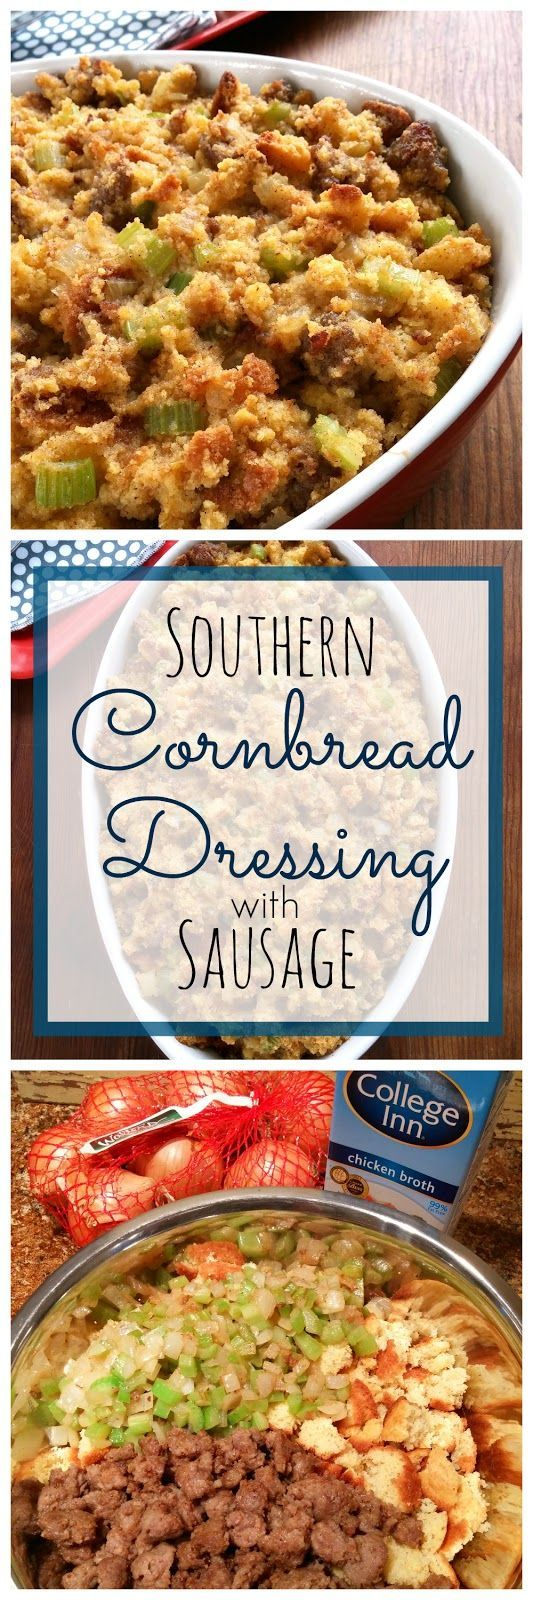 Southern Cornbread Dressing with Sausage! This is a super easy recipe made extra special with sausage crumbles (optional) and College Inn broth. #POURLOVEINN